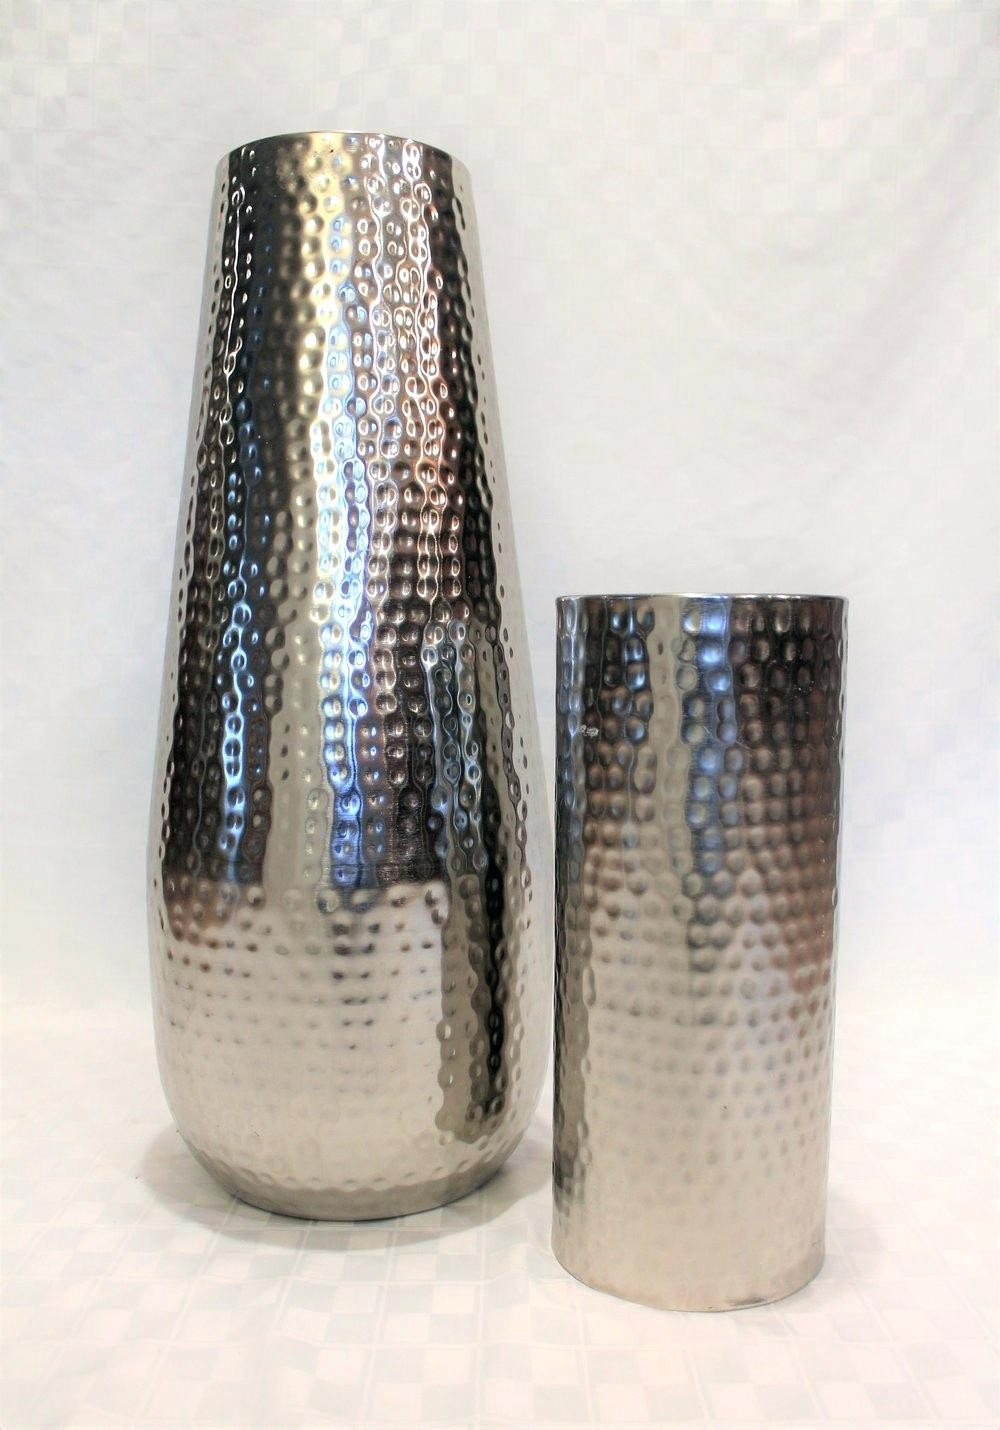 cheap glass vases wholesale uk of silver vases wholesale pandoraocharms us intended for silver vases wholesale glass bulk tall flower fl org